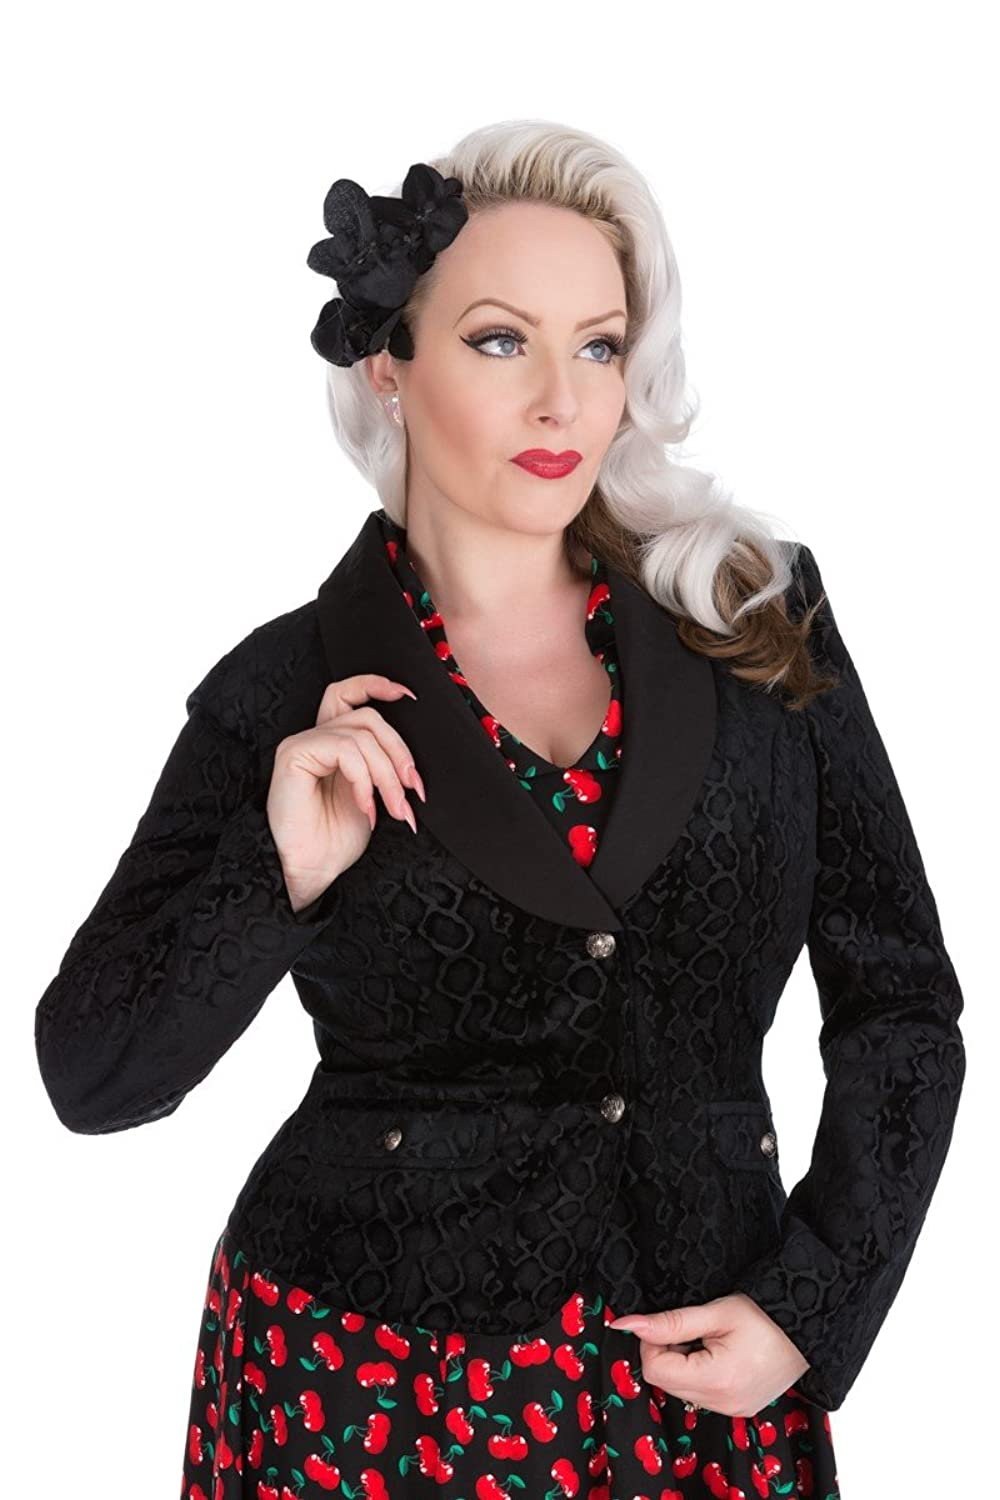 1950s Jackets, Coats, Bolero | Swing, Pin Up, Rockabilly Hearts & Roses Black Leopard Flock Jacket (Shipped from The US and US Sizes) $49.88 AT vintagedancer.com